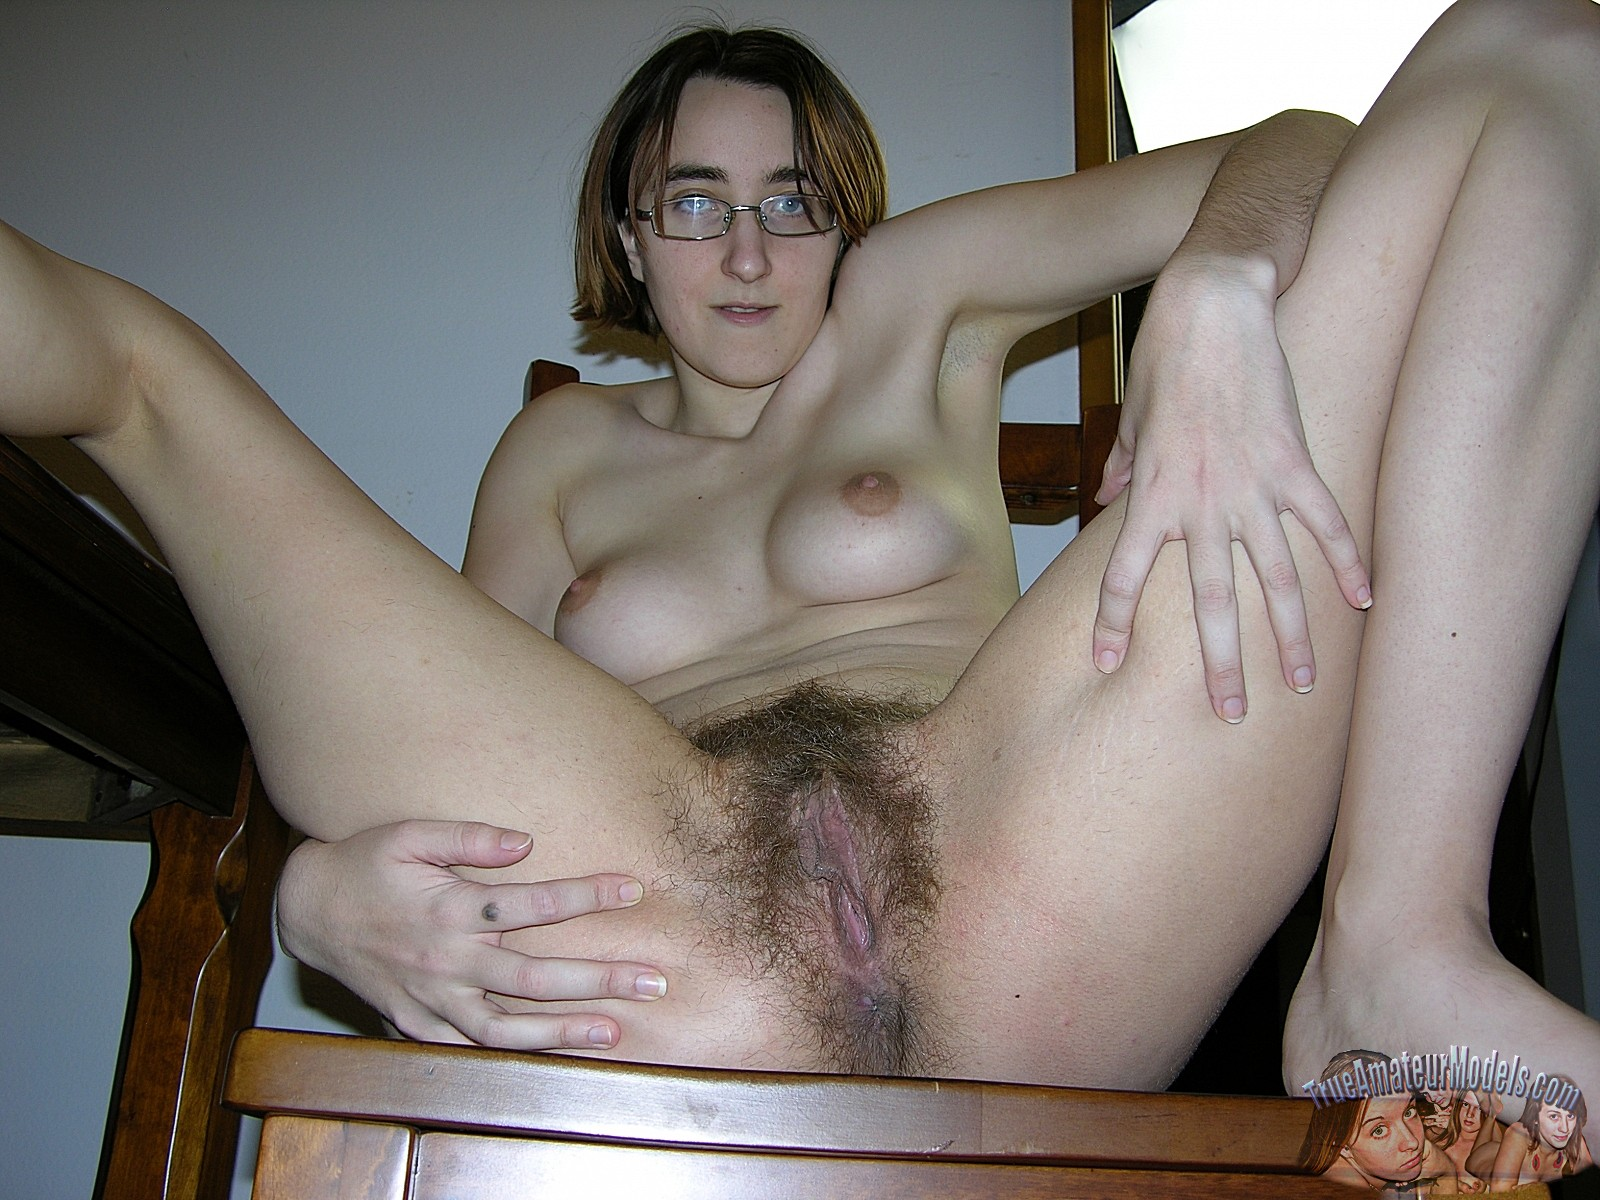 Nerd hairy hot cunt